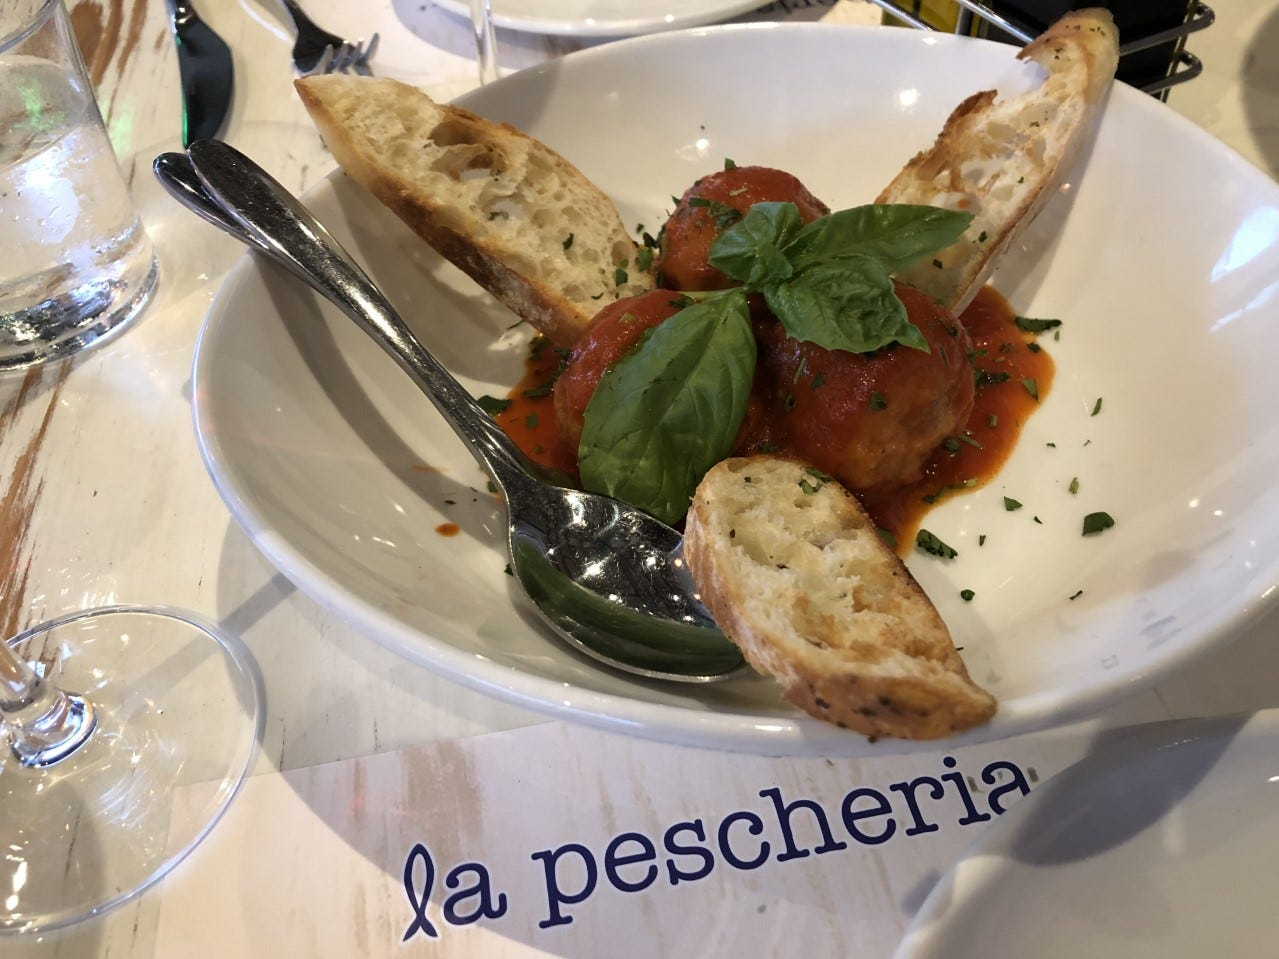 Branzino meatballs ($15) from La Pescheria make you rethink the genre entirely. They are velvety and delicious with a briny sweetness.